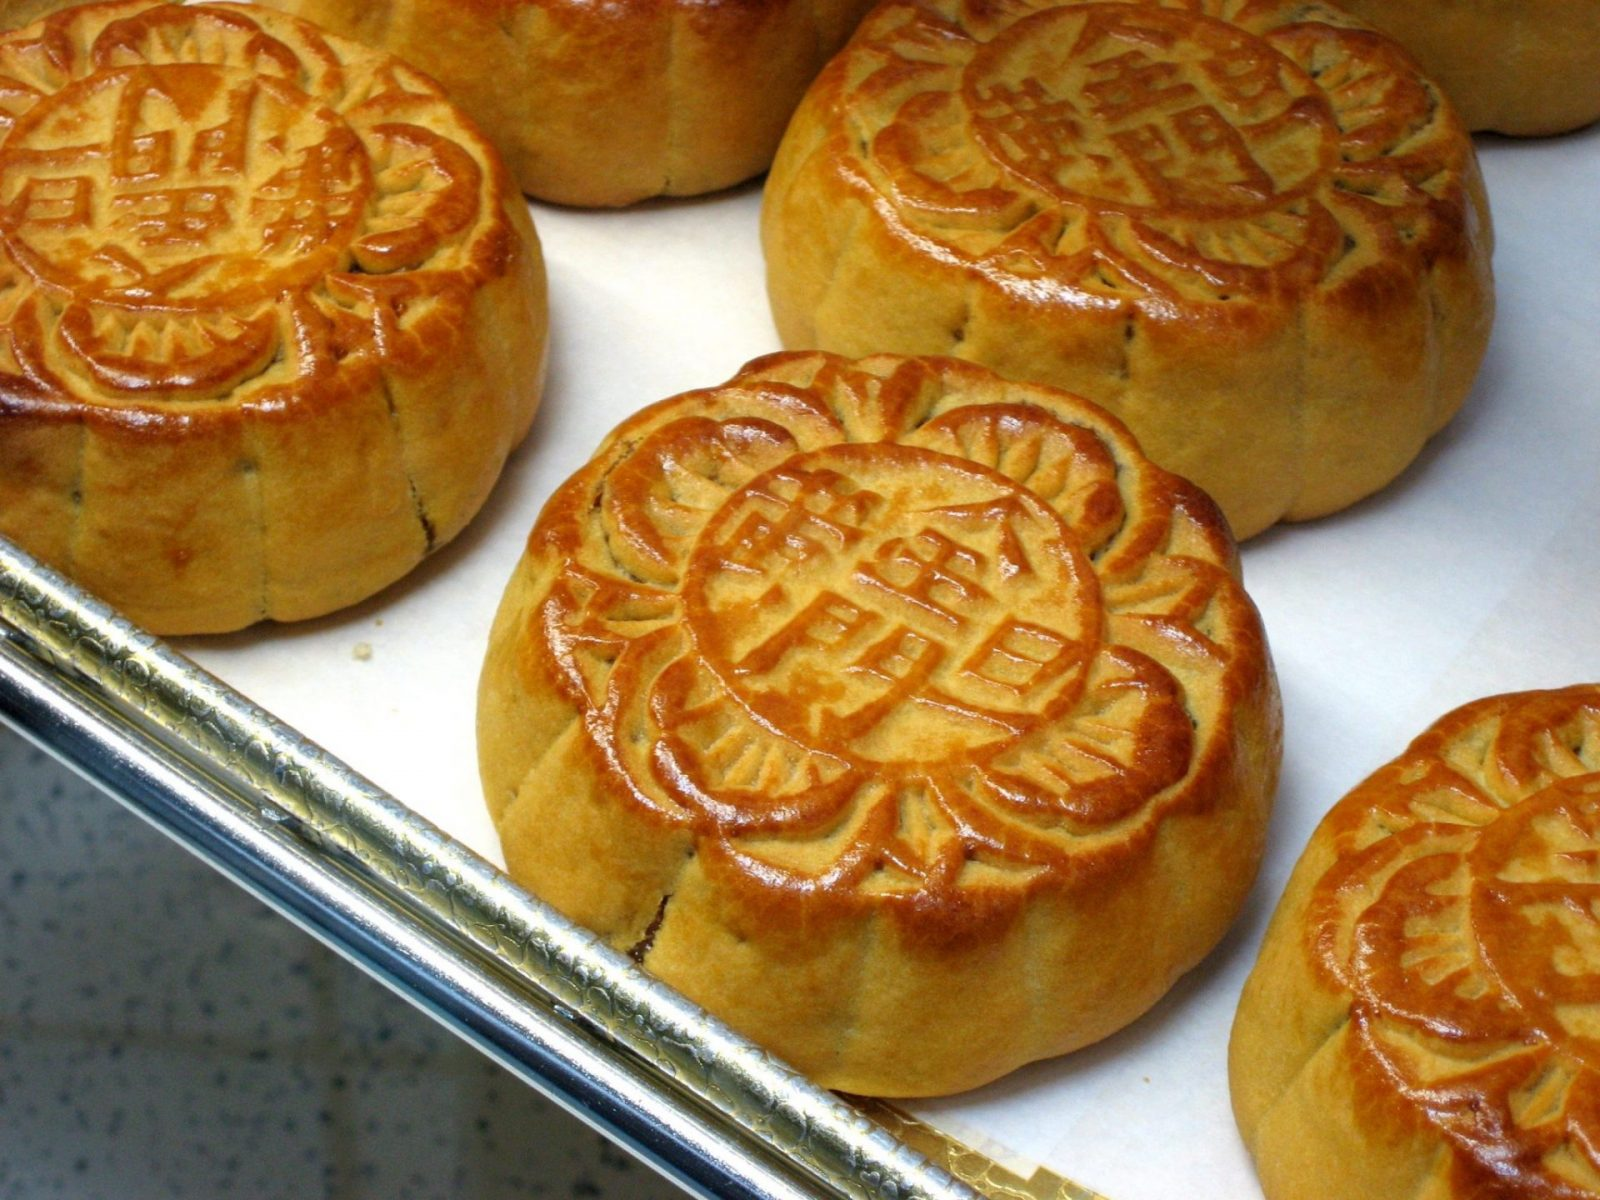 Singapore Mooncake Festival: Where to See the Best Events & Celebrations